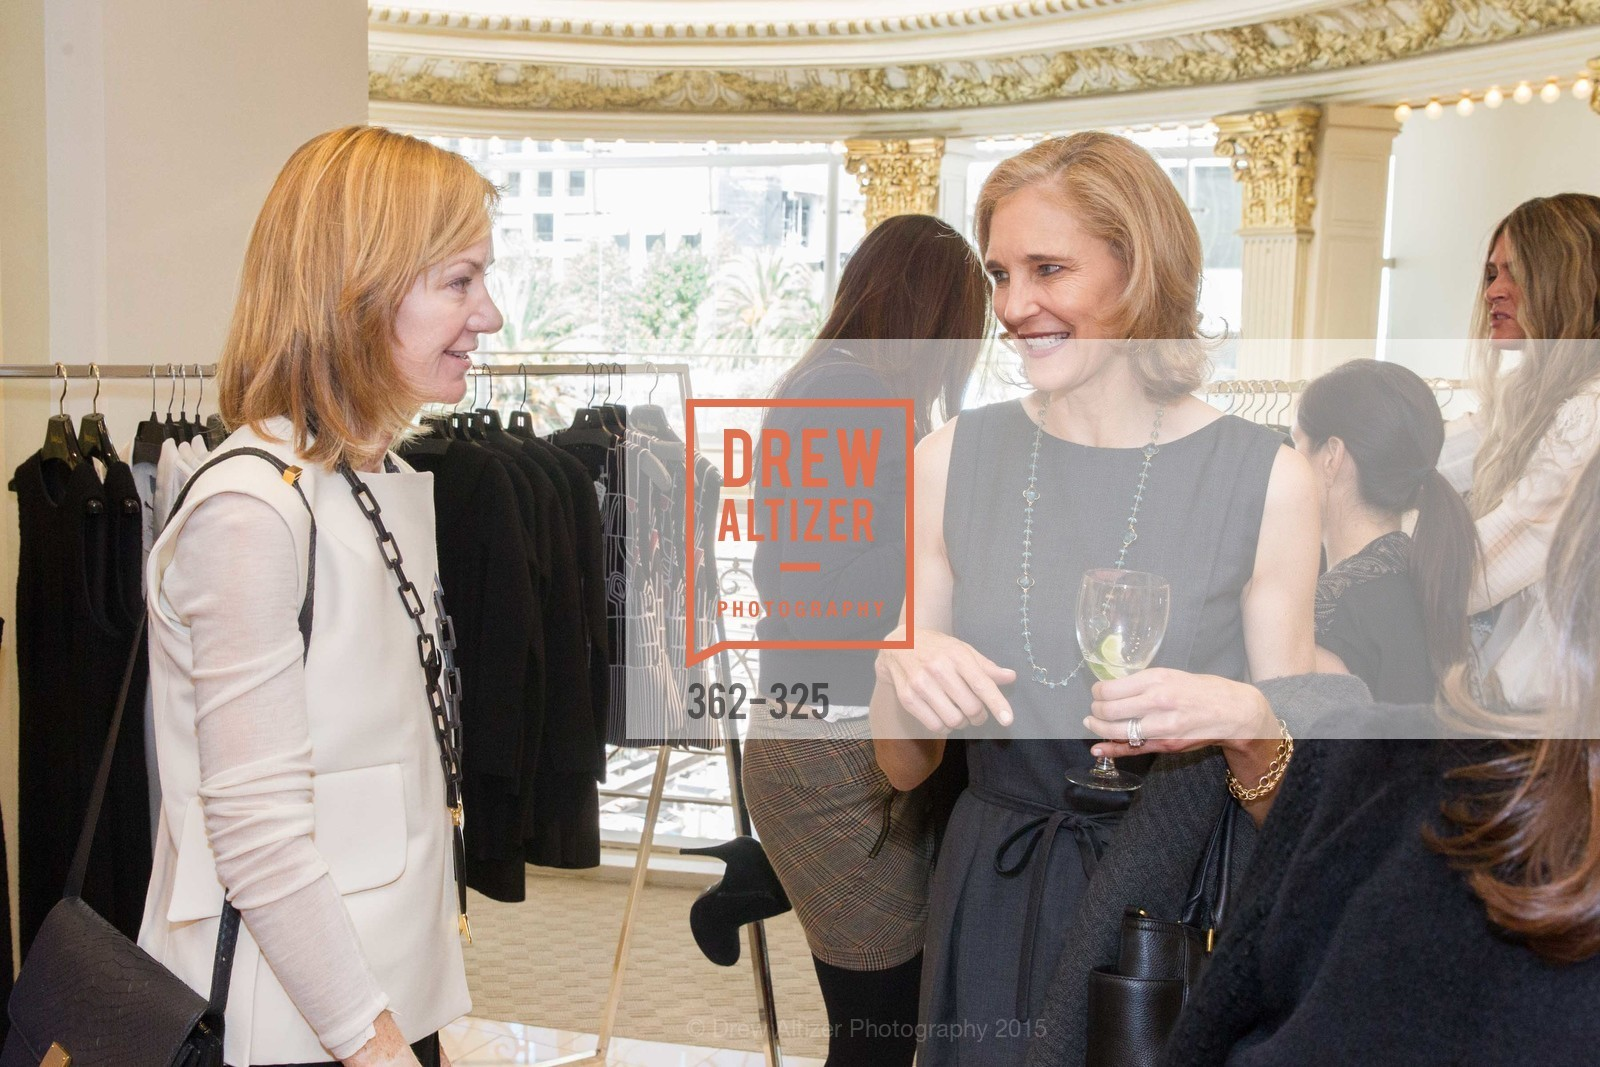 Katie Paige, Jennifer Biederbeck, Maiyet Reception at Neiman Marcus, Neiman Marcus, September 29th, 2015,Drew Altizer, Drew Altizer Photography, full-service event agency, private events, San Francisco photographer, photographer California